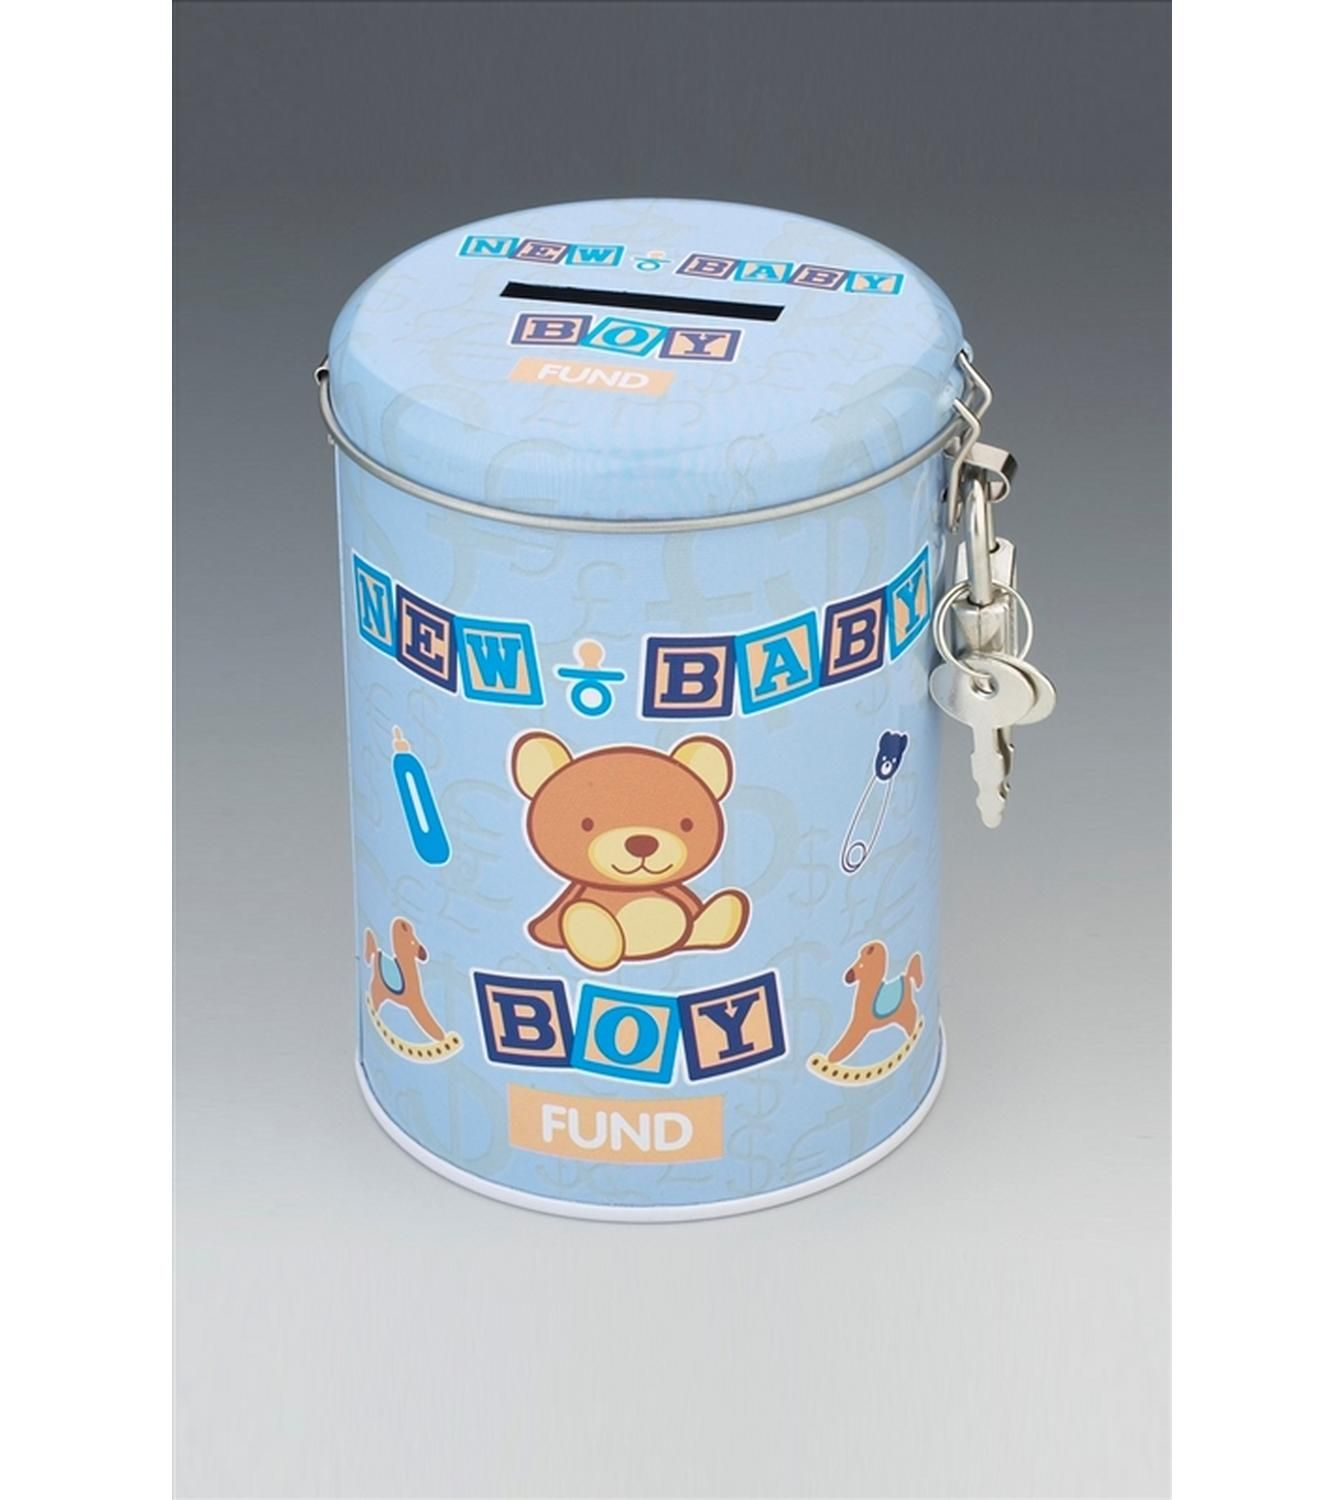 New Baby Boy Fund Tin - http://tidd.ly/78d183bd